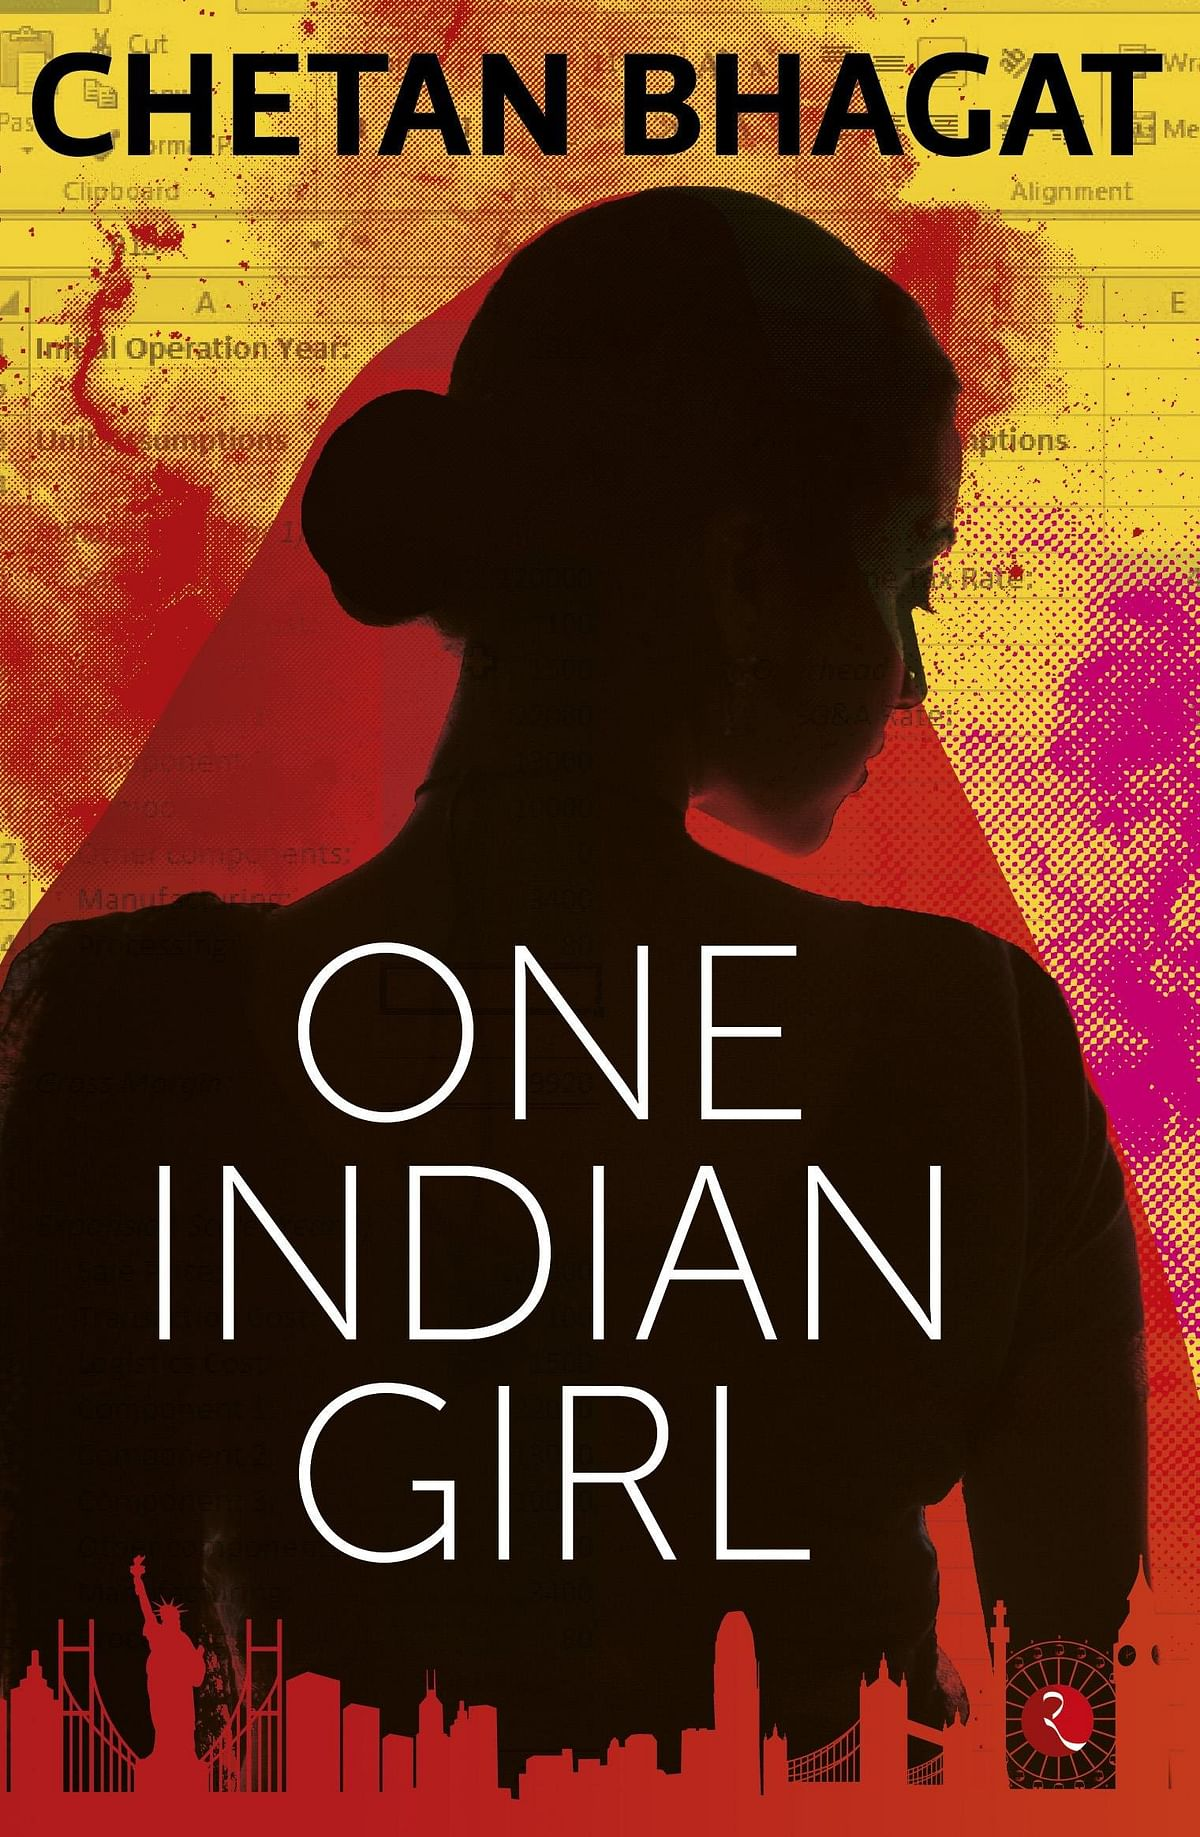 "(Photo Courtesy: <a href=""http://www.amazon.in/One-Indian-Girl-Chetan-Bhagat/dp/8129142147"">Amazon.in</a>)"